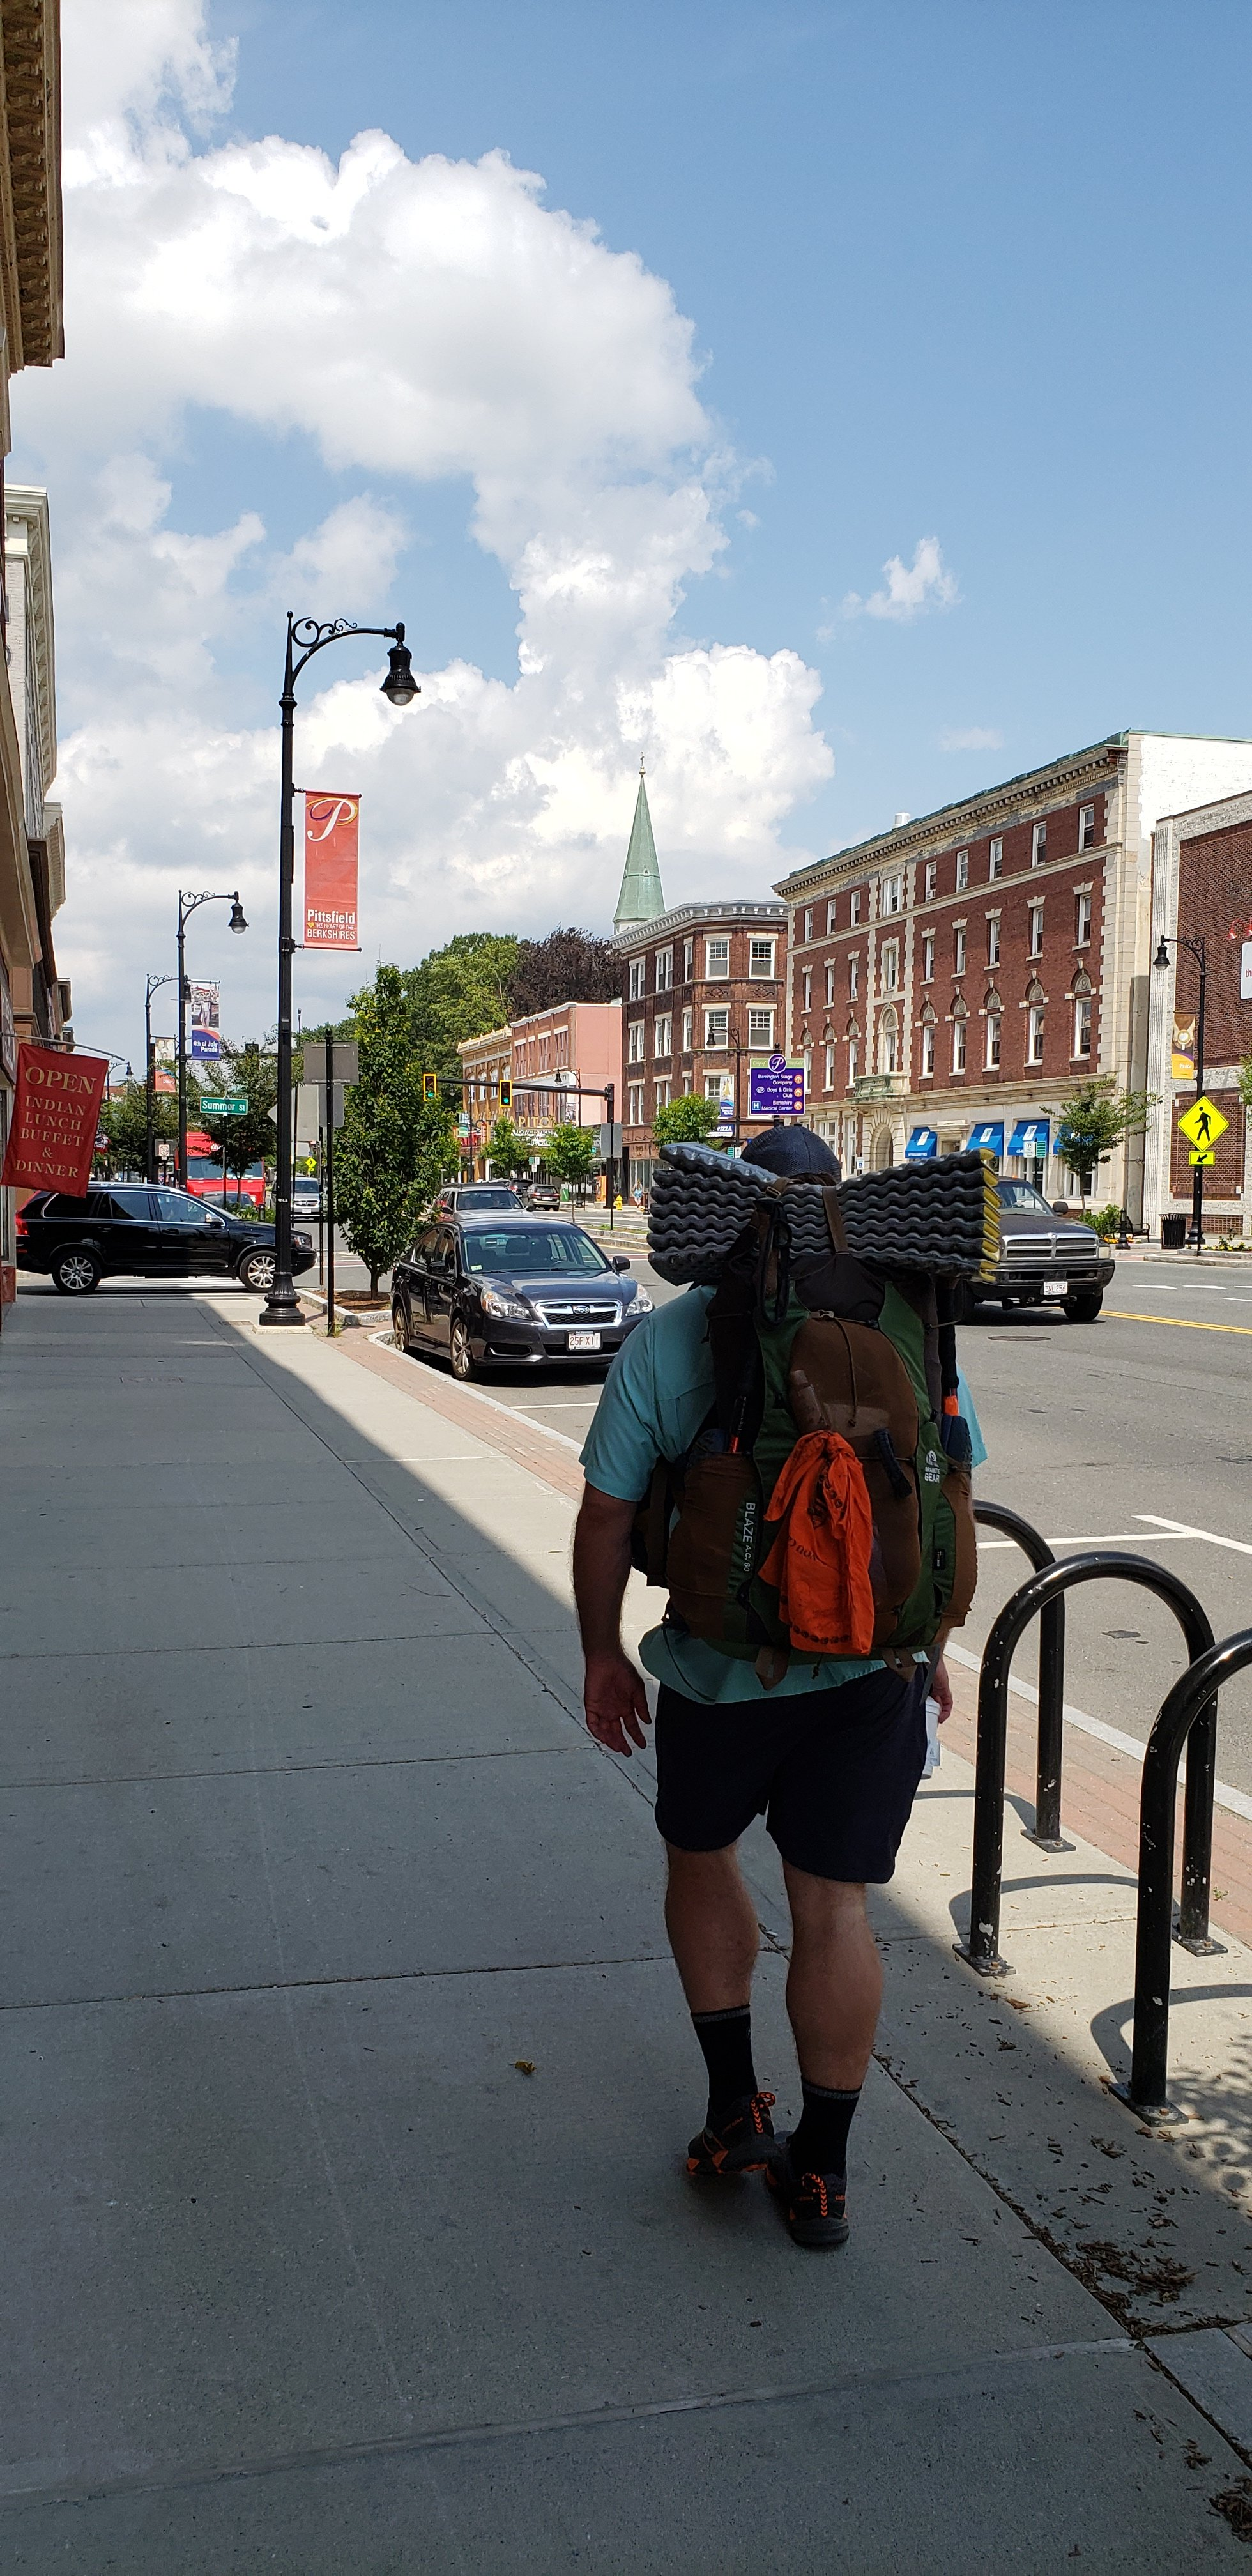 A hiker walks in the foreground of a brick building, small town downtown. The sky is blue and a church steeple can be seen in the background.